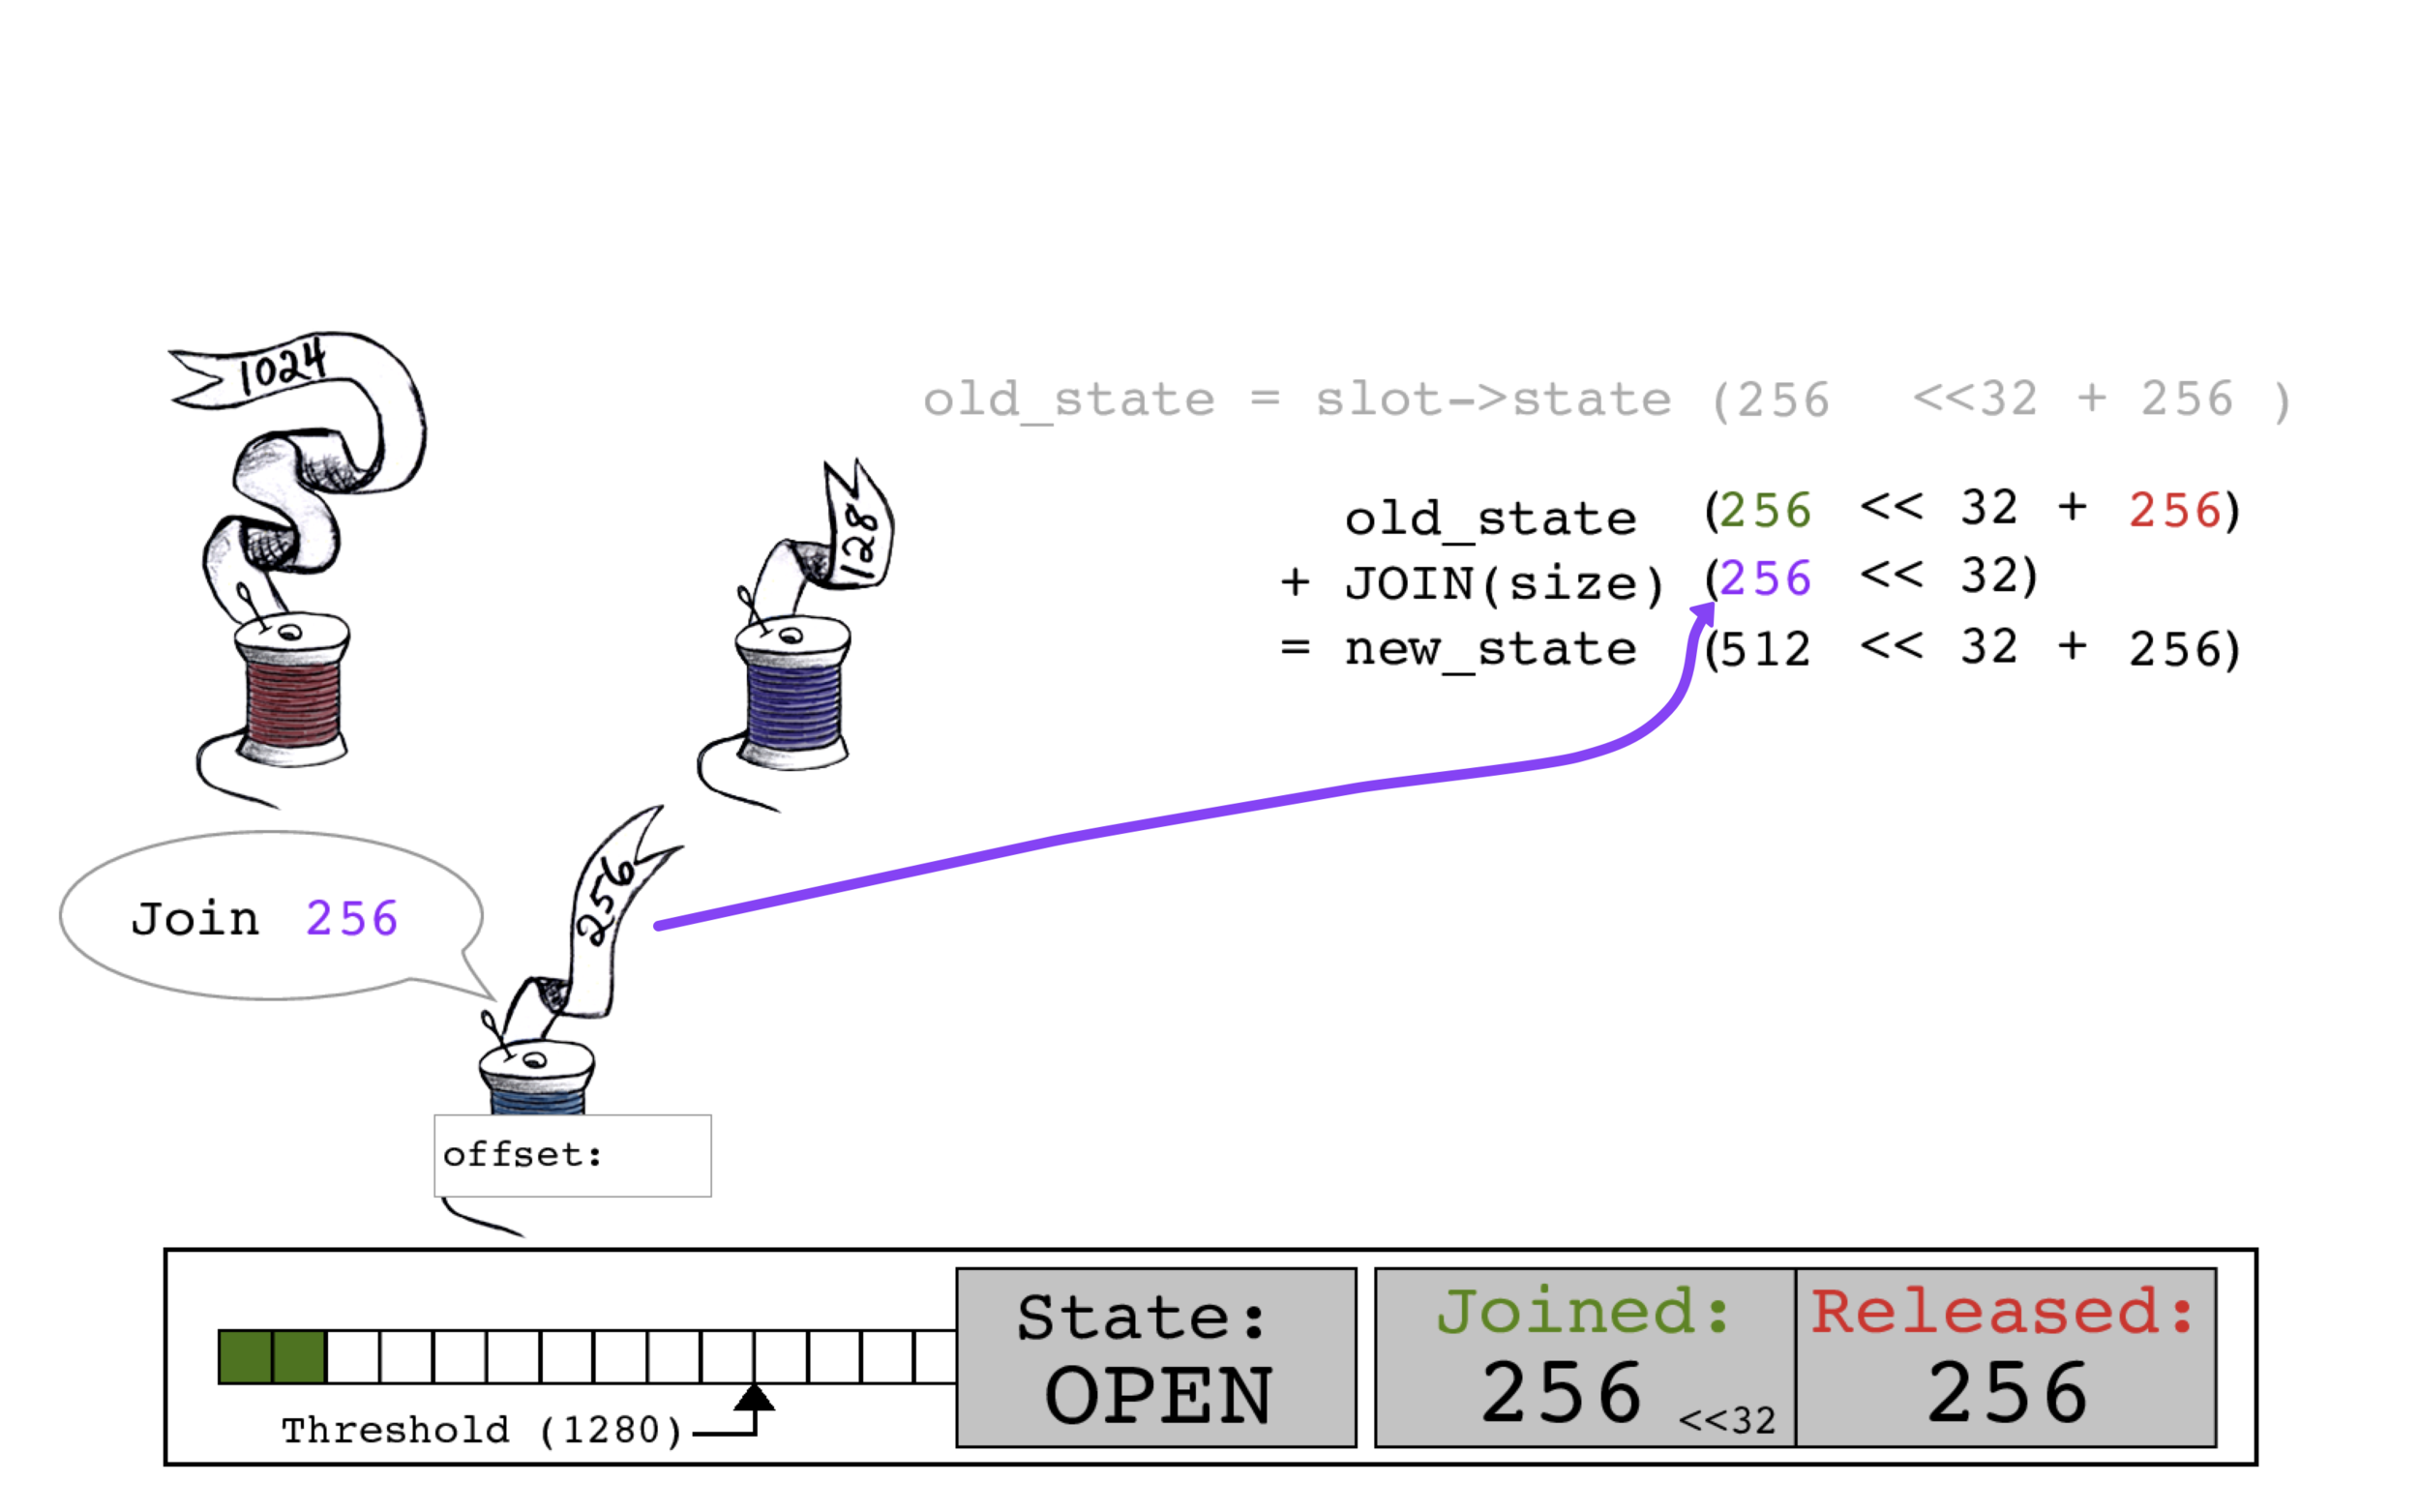 Blue thread calculates a new_state by adding its size of 256 to the JOINED bits.